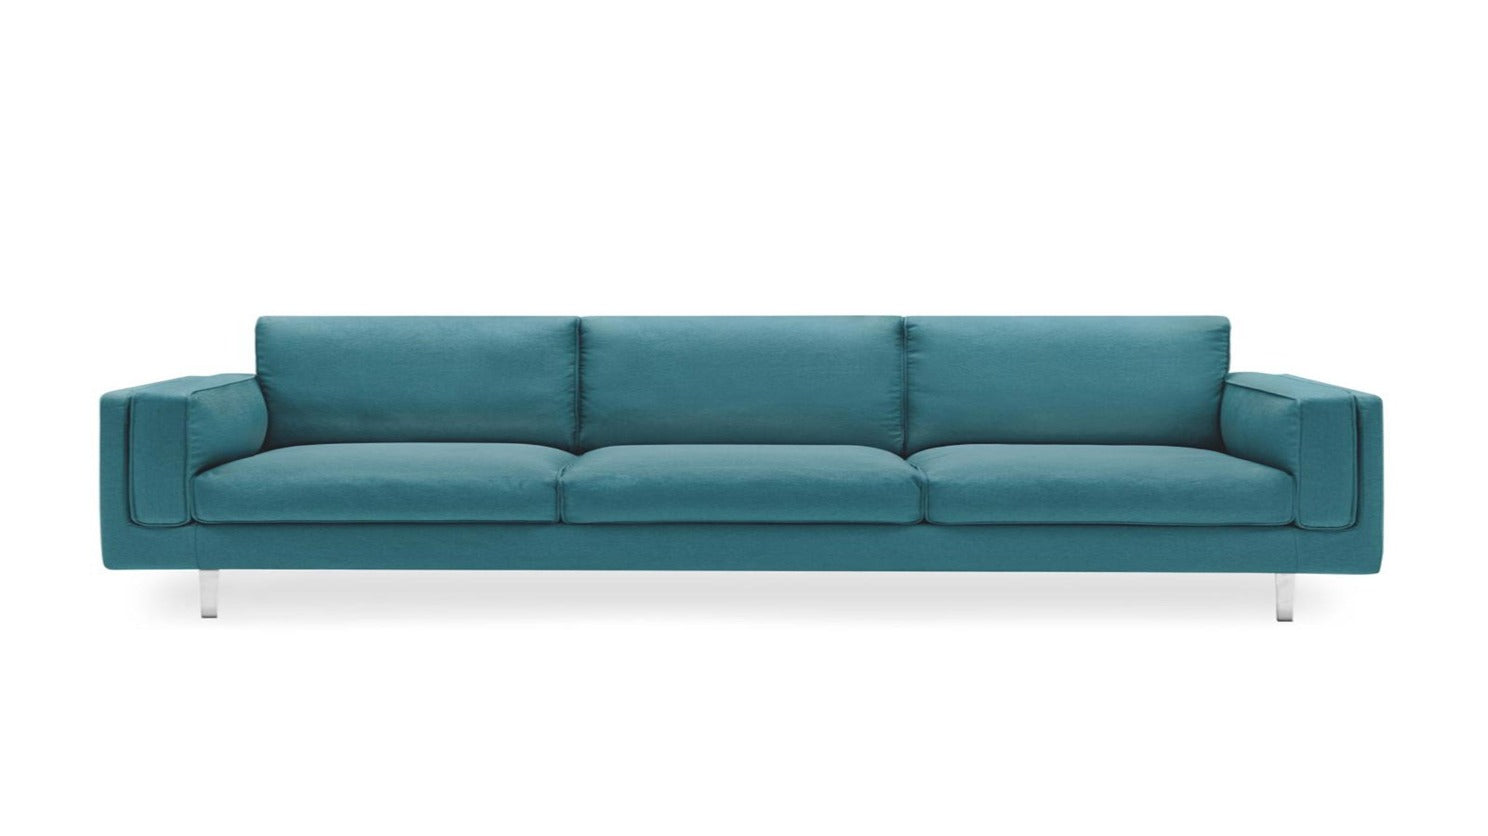 Contemporary Italian Metro Sofa By Calligaris